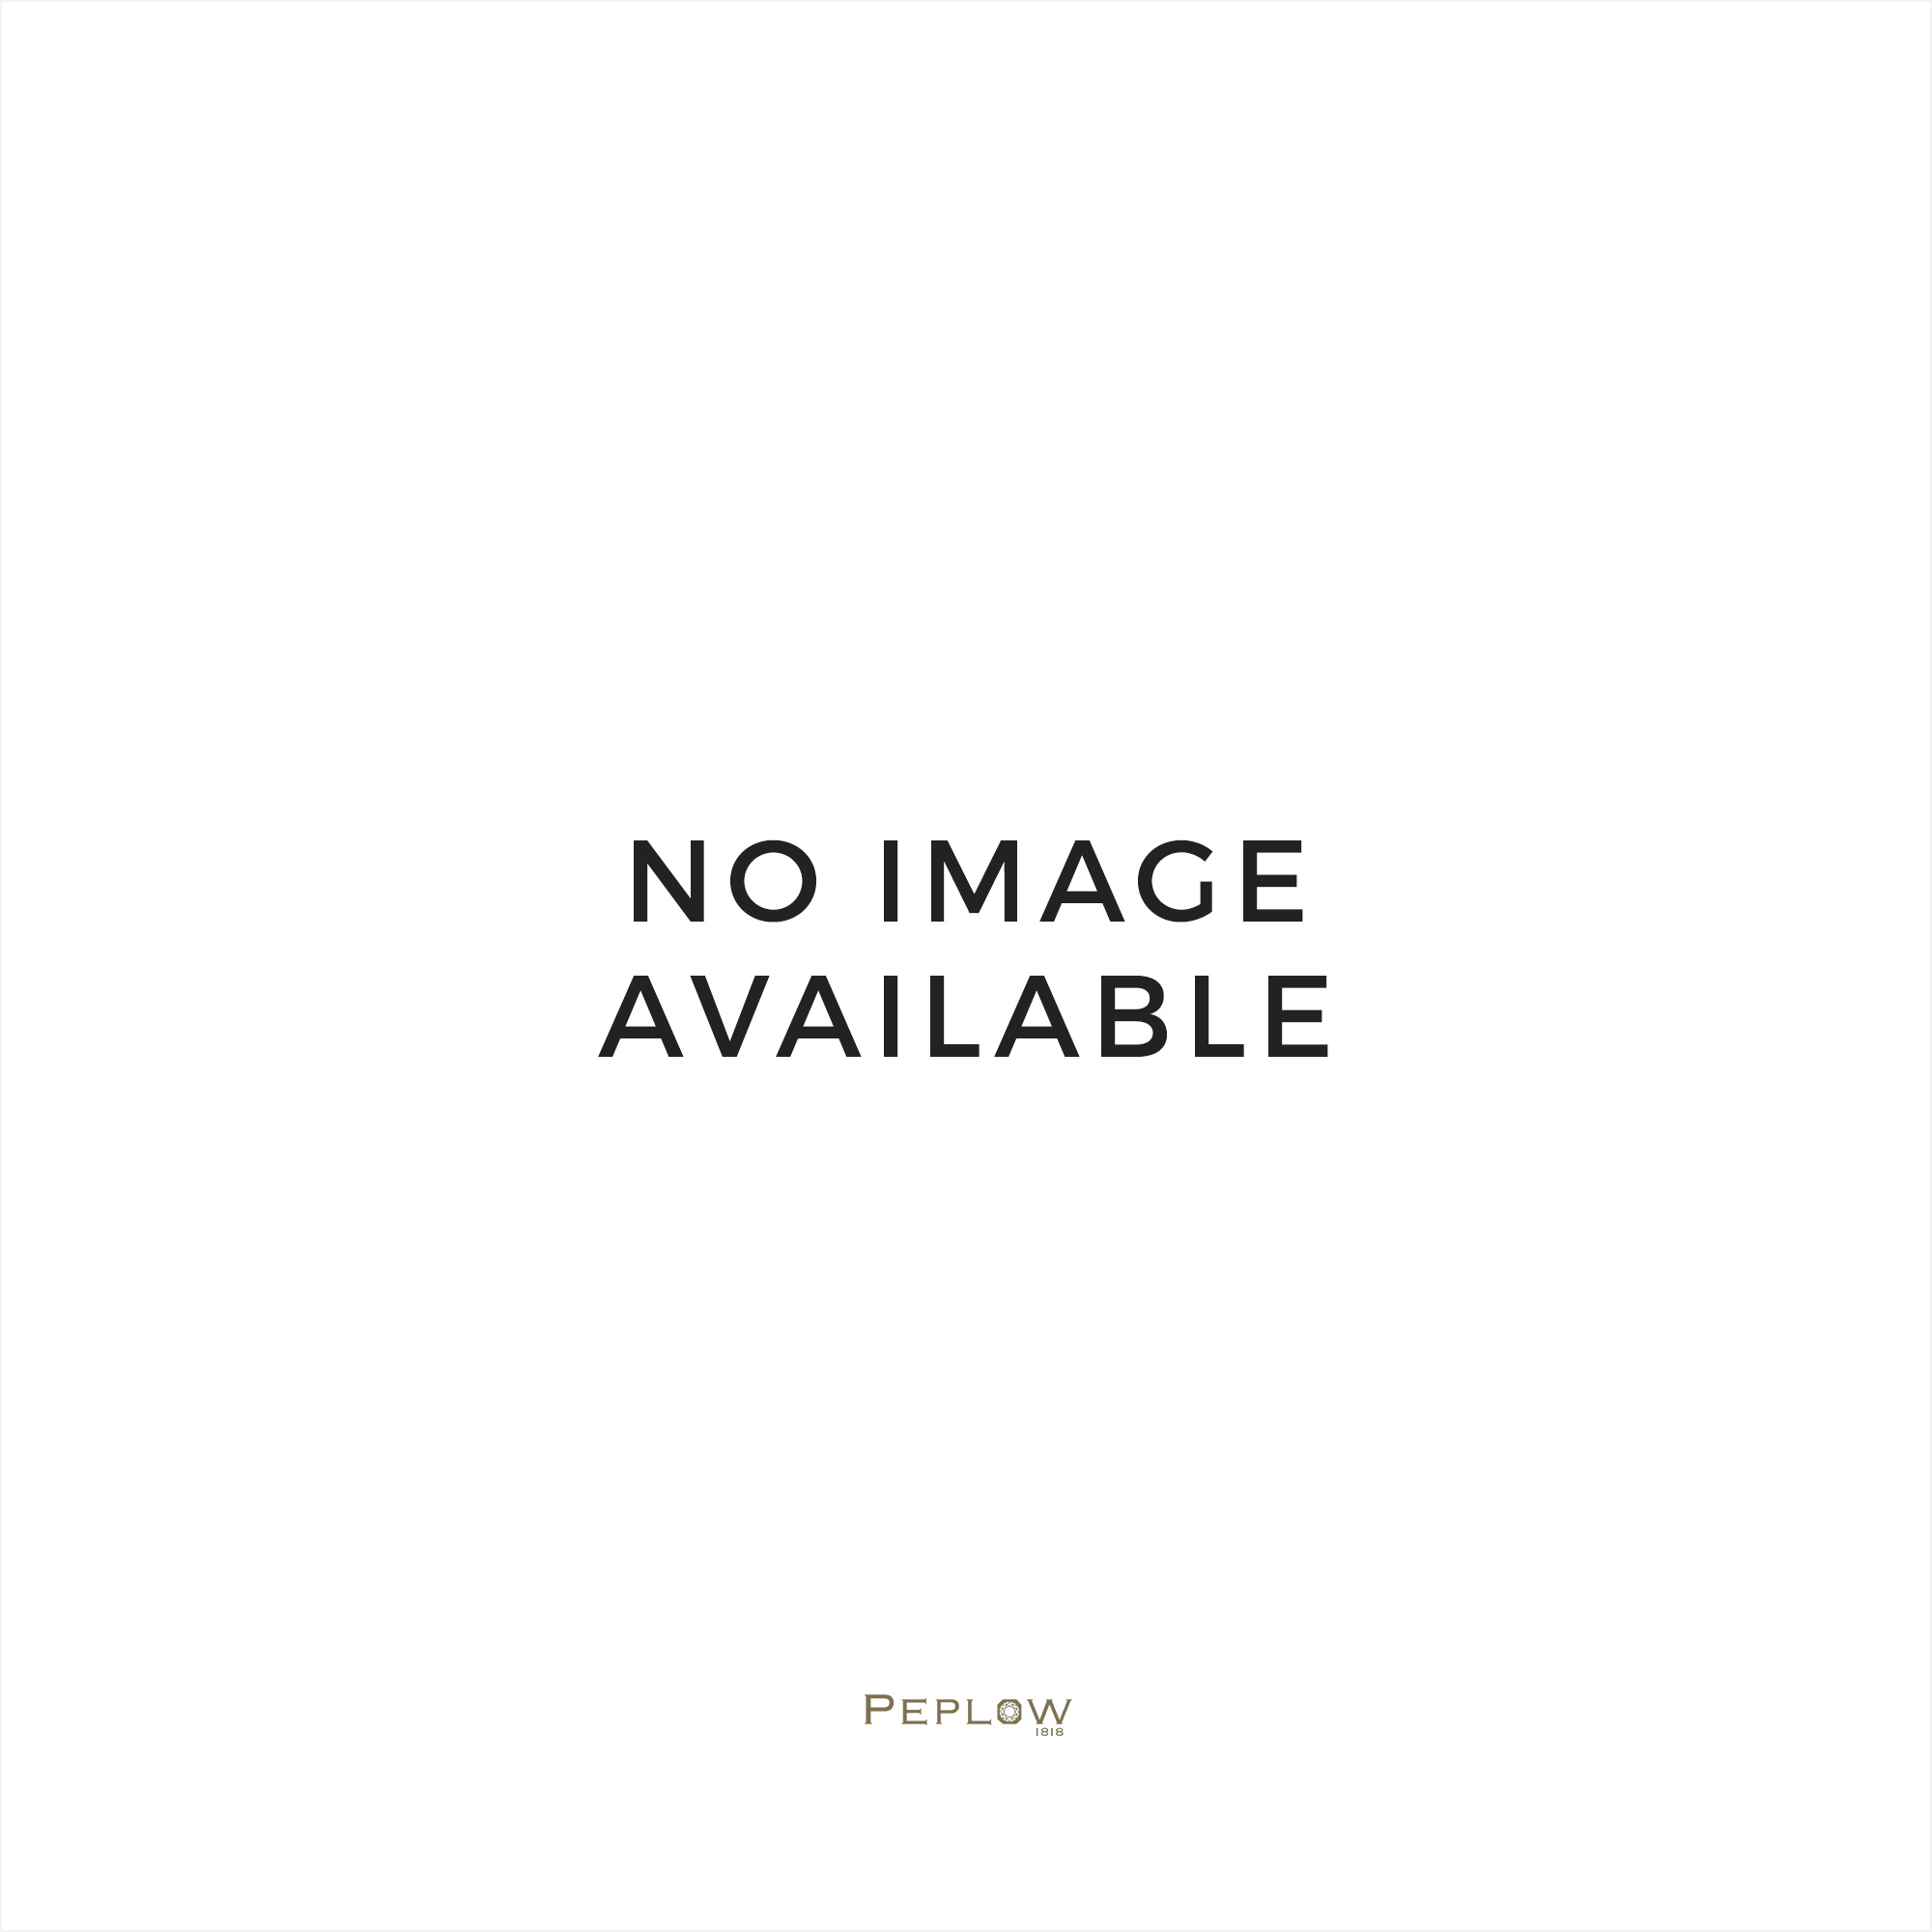 Seiko Astron GPS Novak Djokovic Limited Edition Watch